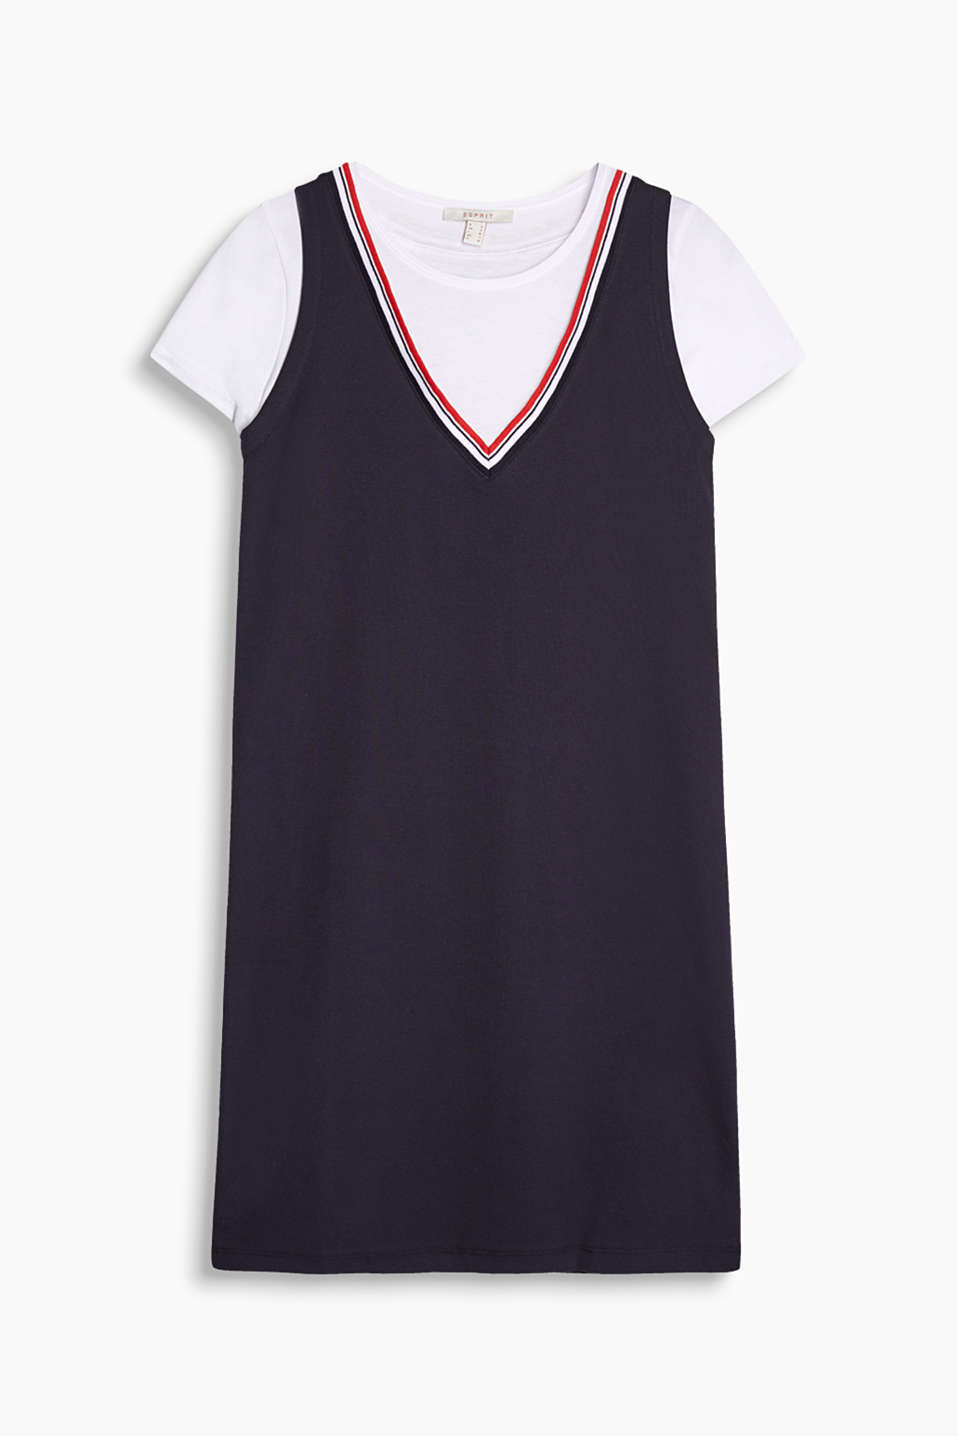 Fitted jersey dress in a tennis look with an integrated T-shirt element and a highlighted V-neckline